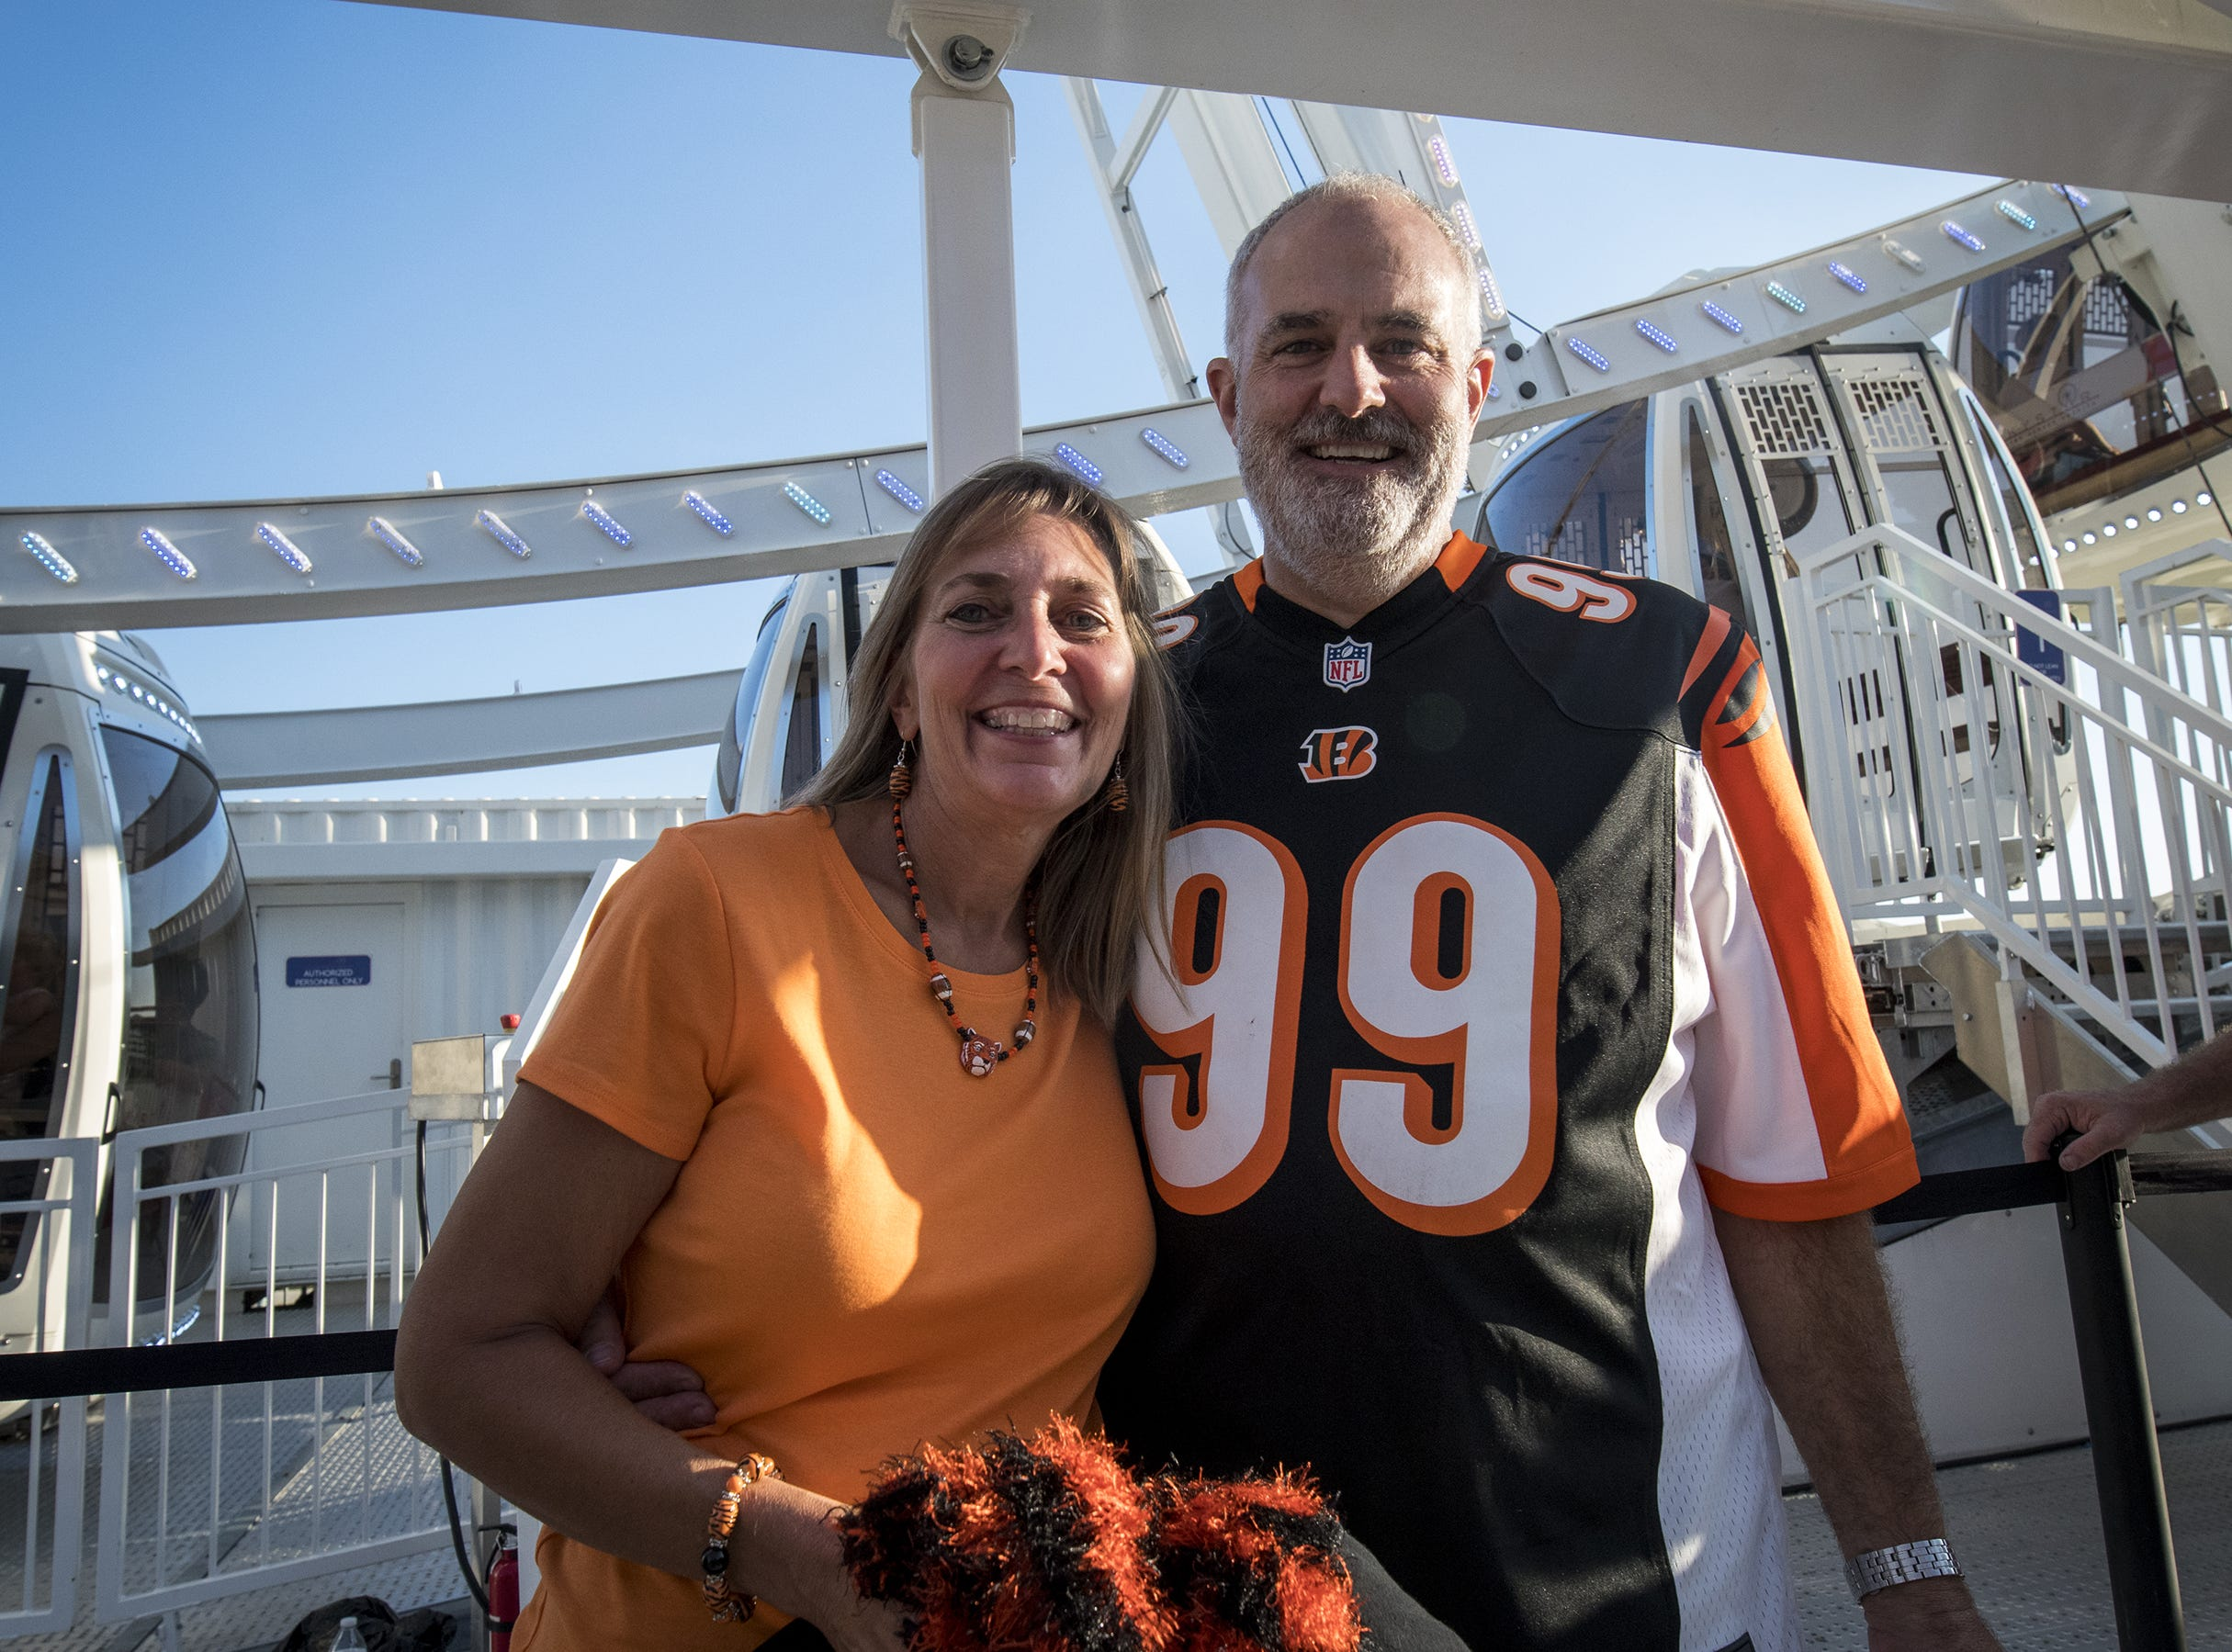 Bengals fans Jocelyn and Rob Marshall of Lebanon take a ride on the sky wheel before the Bengals game against the Baltimore Ravens Thursday, September 13, 2018 in Cincinnati, Ohio.